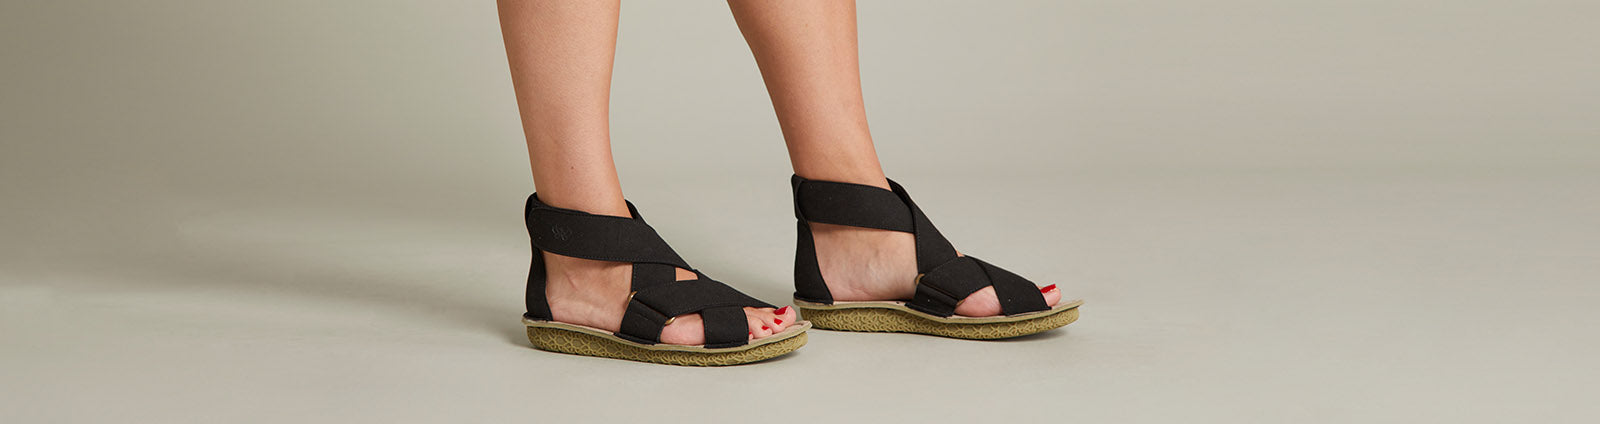 Po-Zu Womens sustainable, ethical sandals